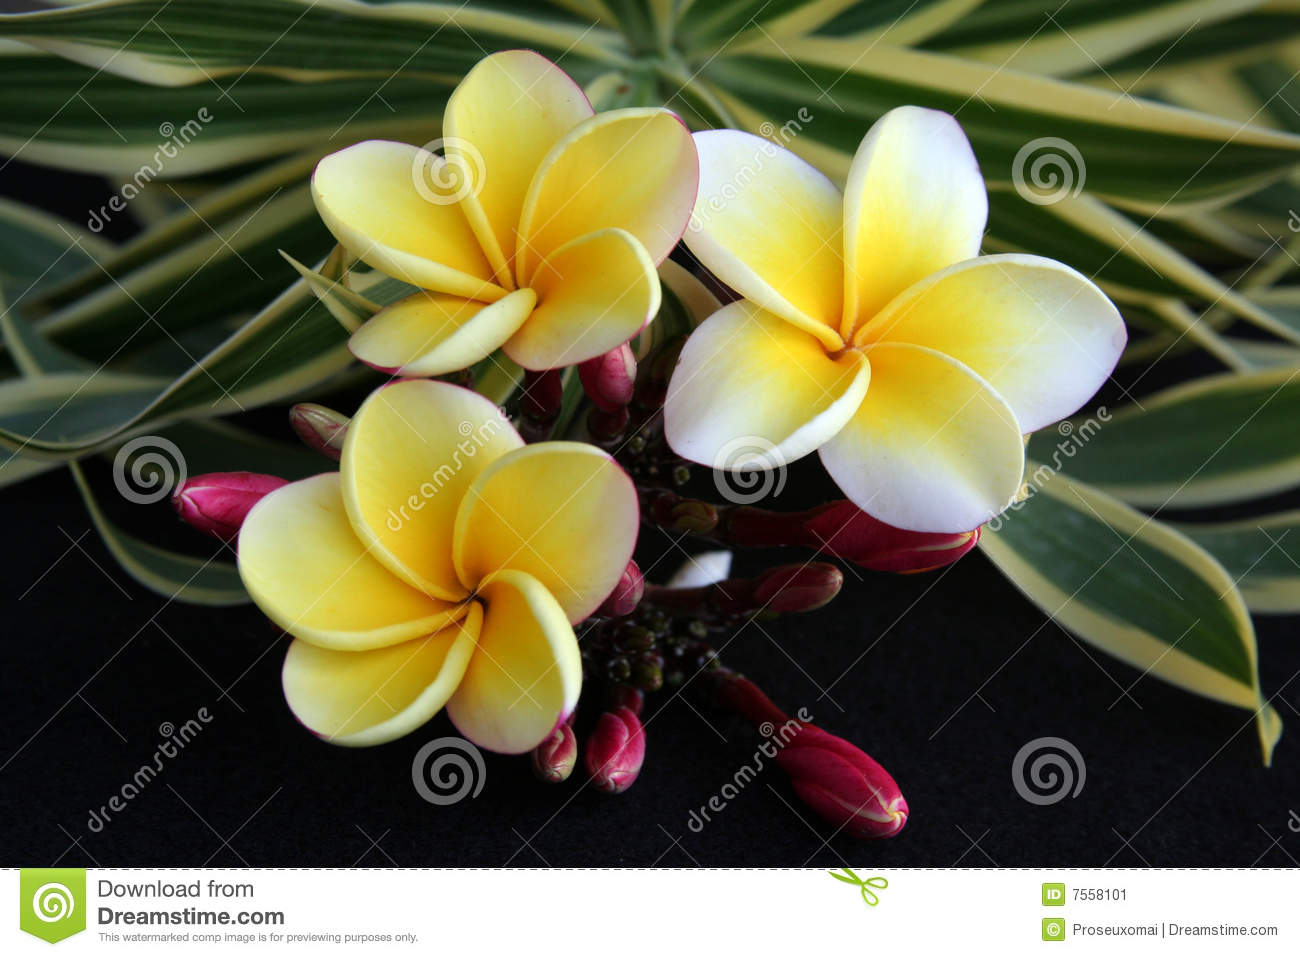 Hawaiian plumeria flower stock image image of delicate 7558101 hawaiian plumeria flower izmirmasajfo Choice Image